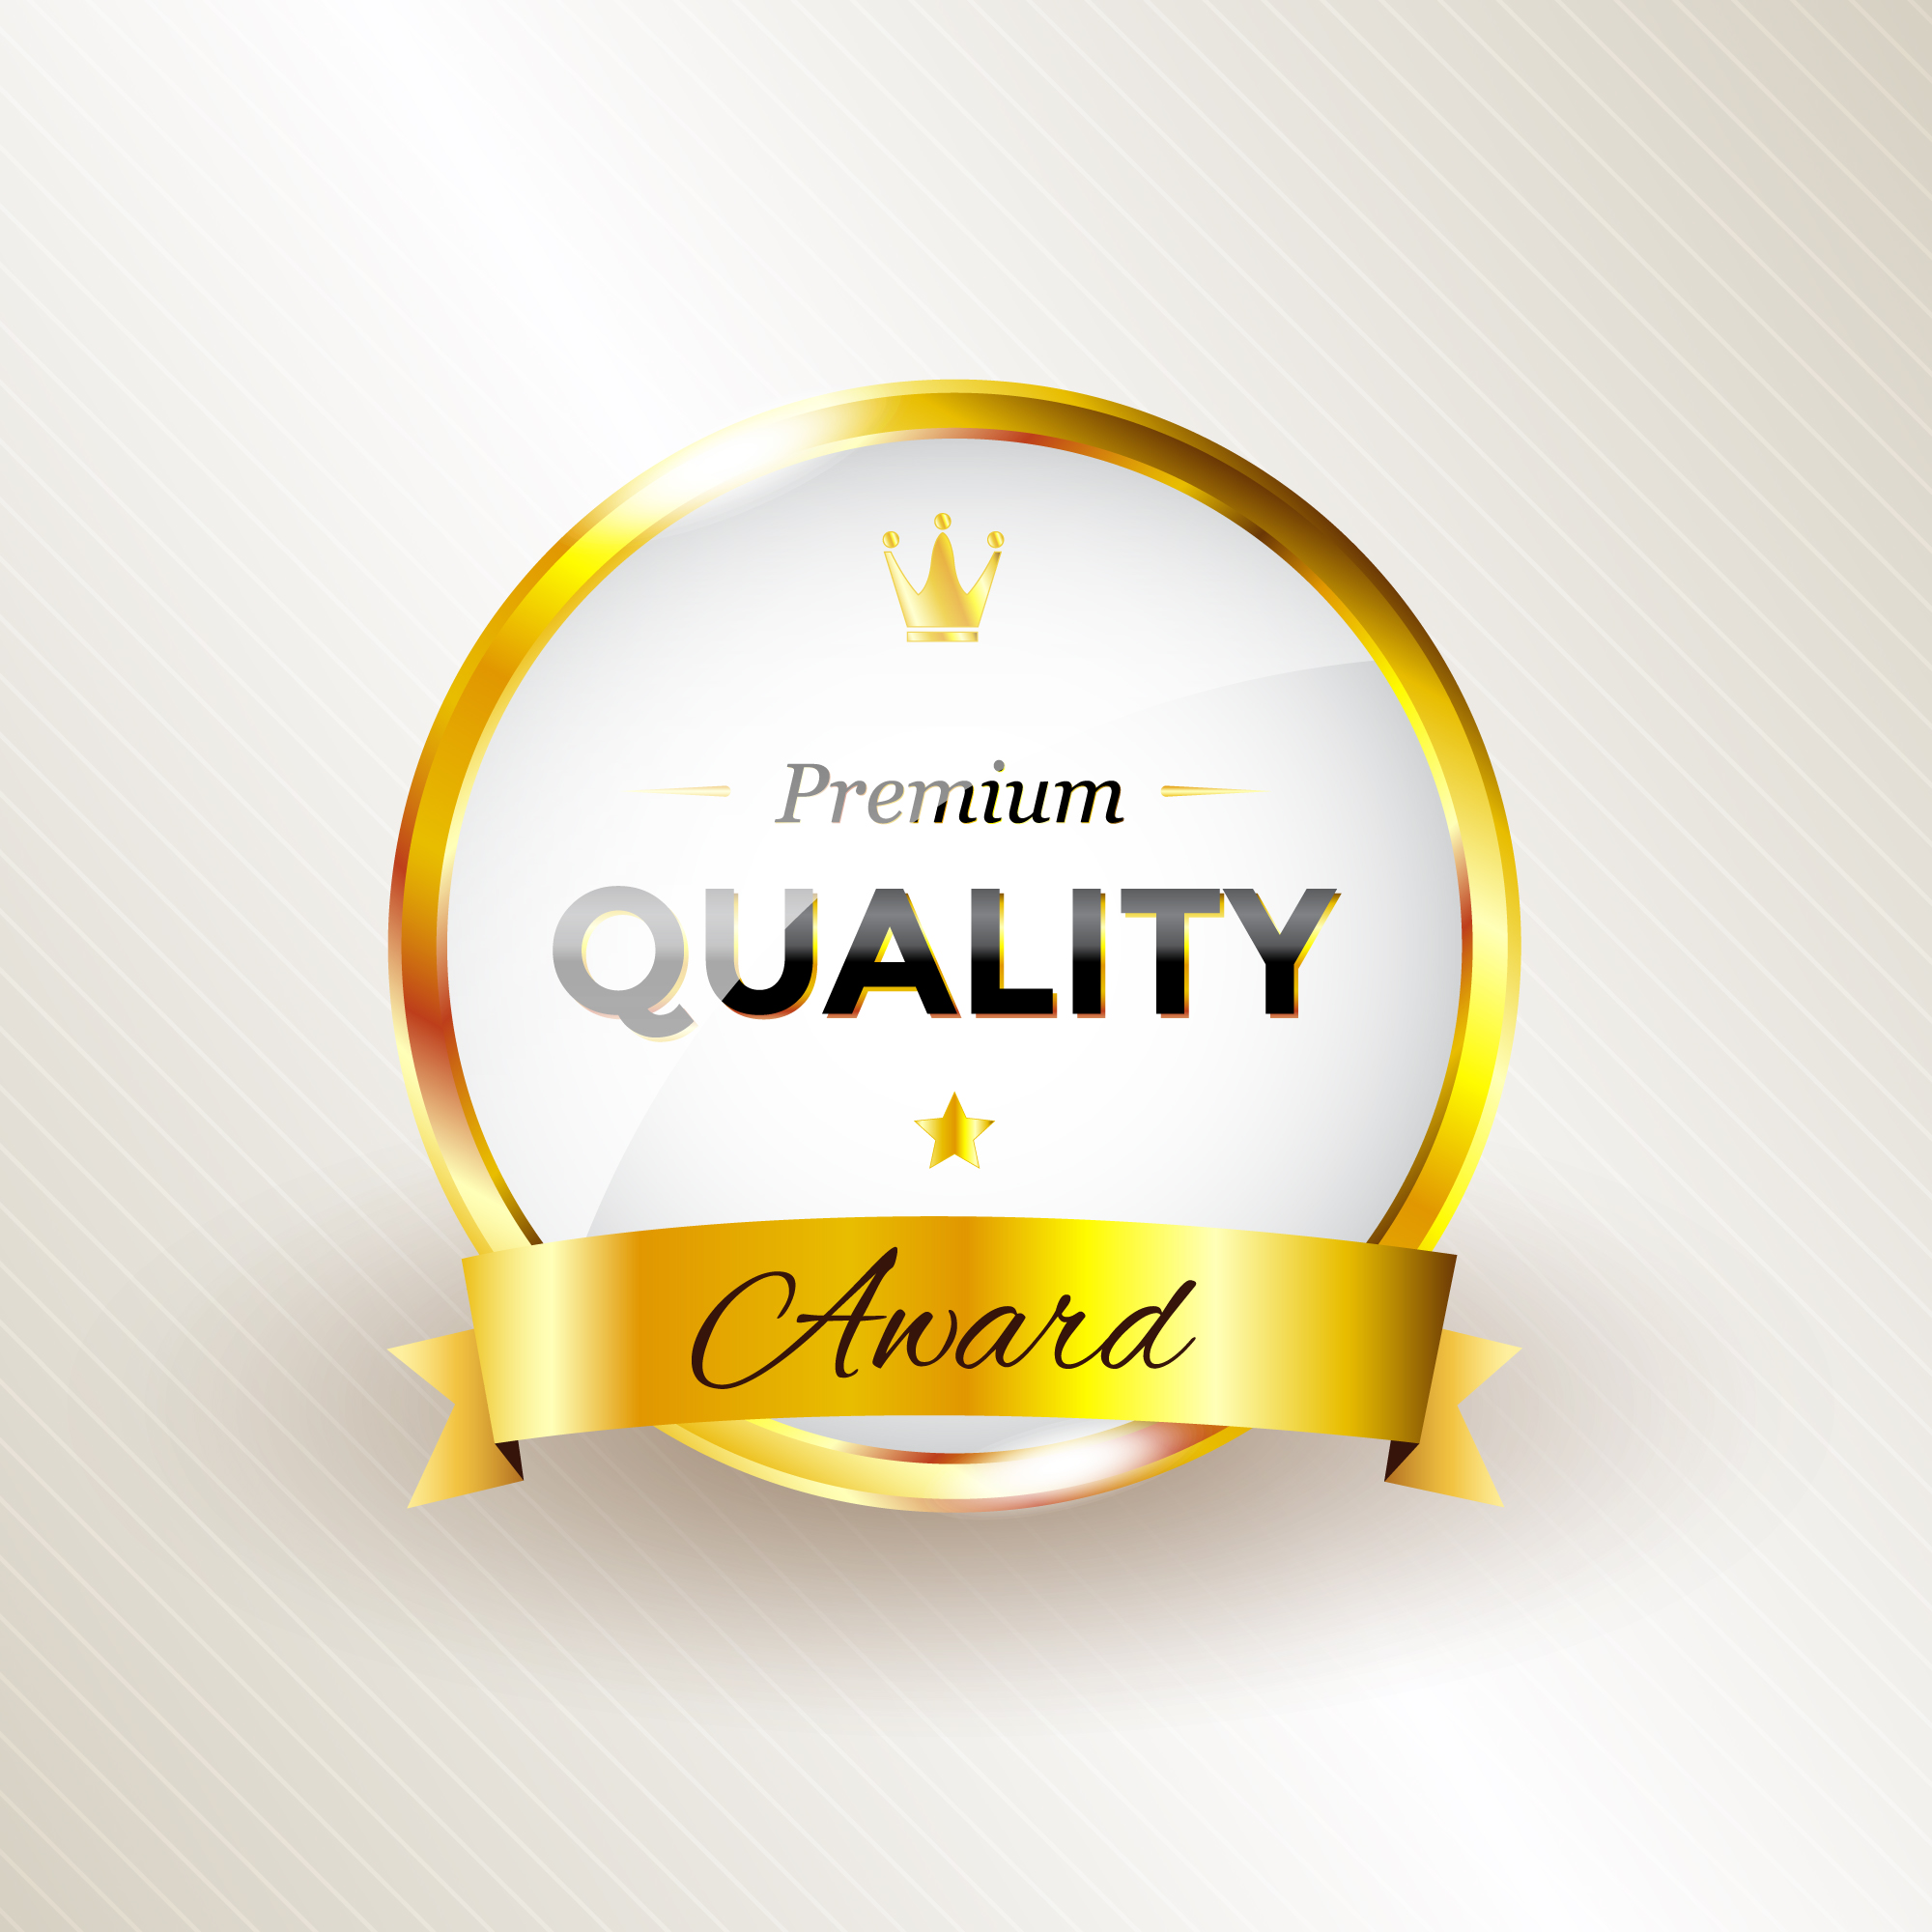 Quality award design